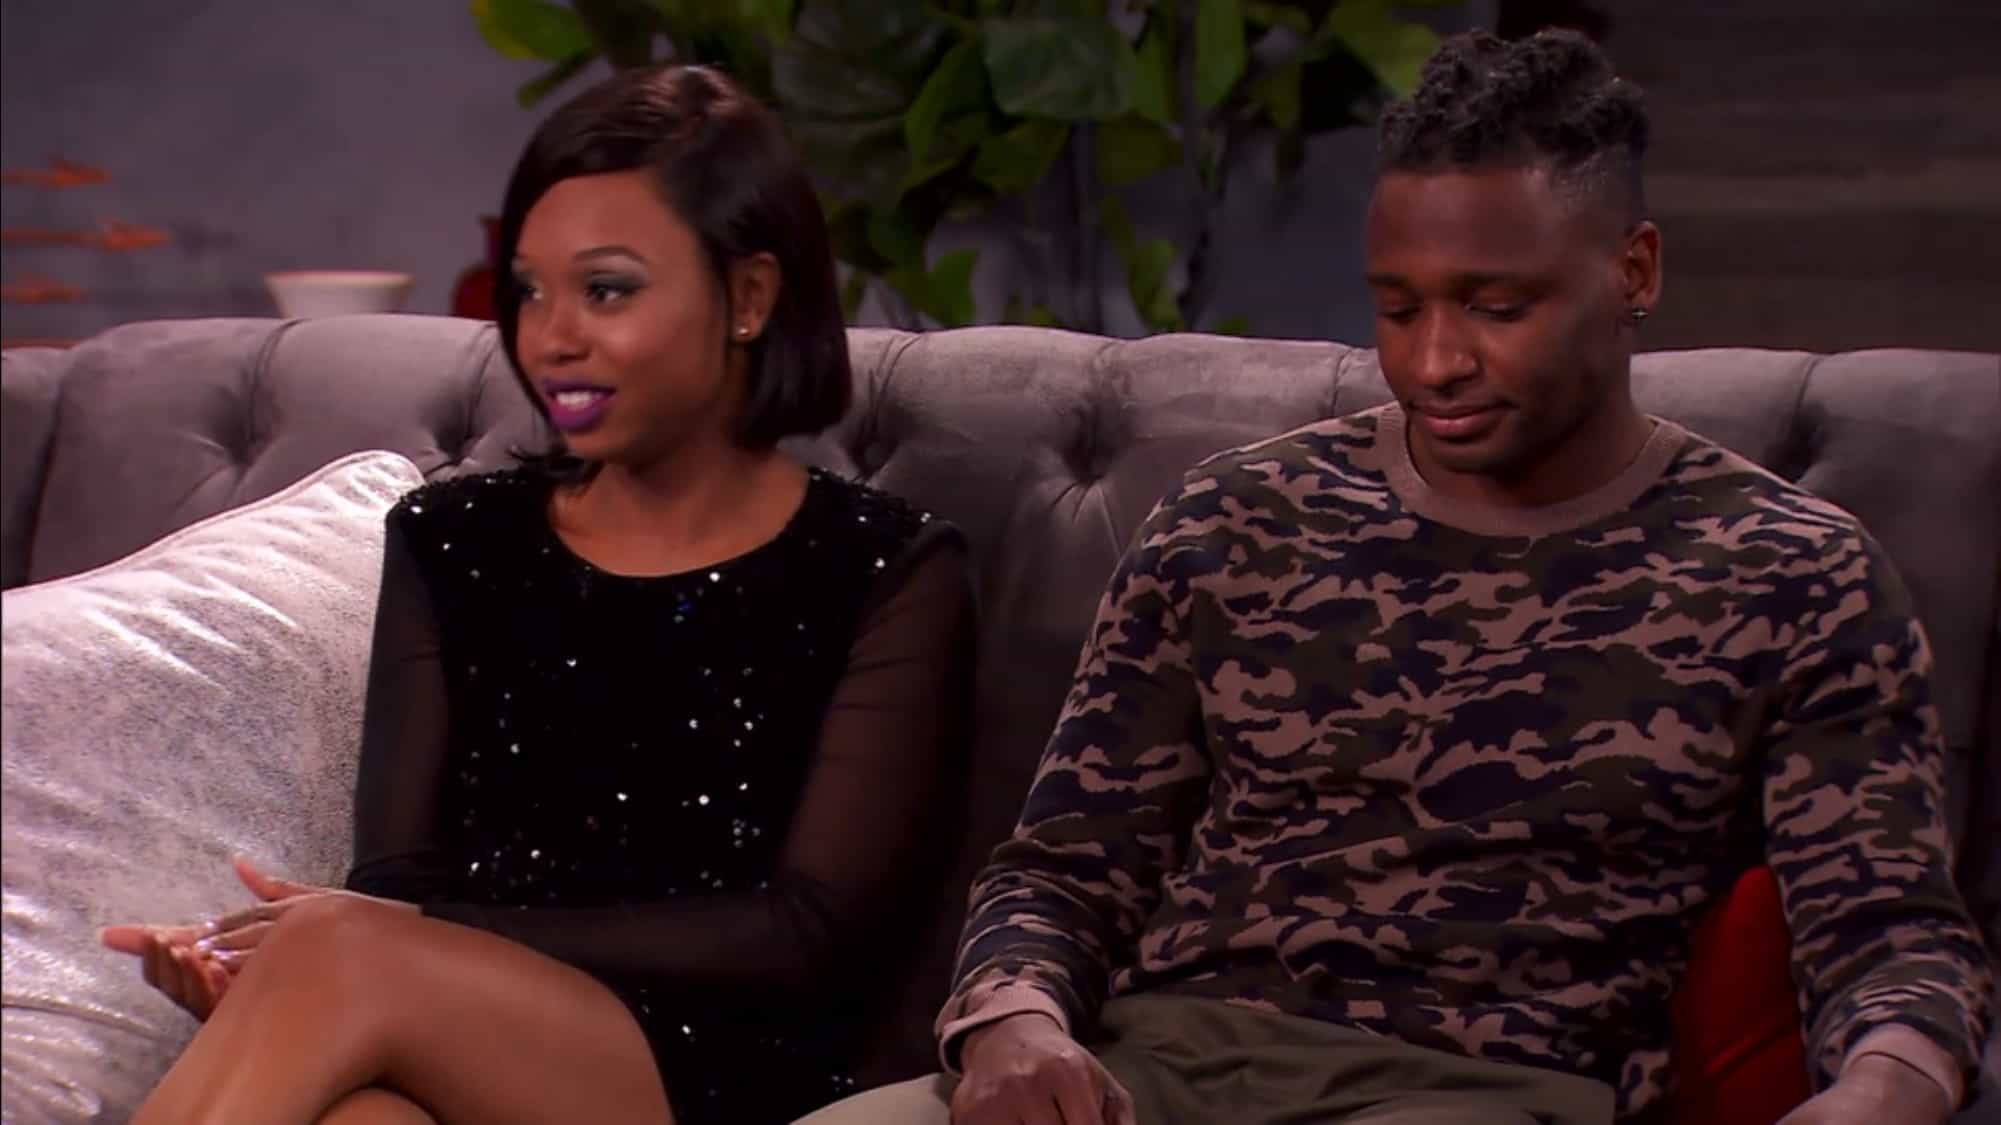 Married at First Sight Season 6 Reunion Shawniece and Jephte